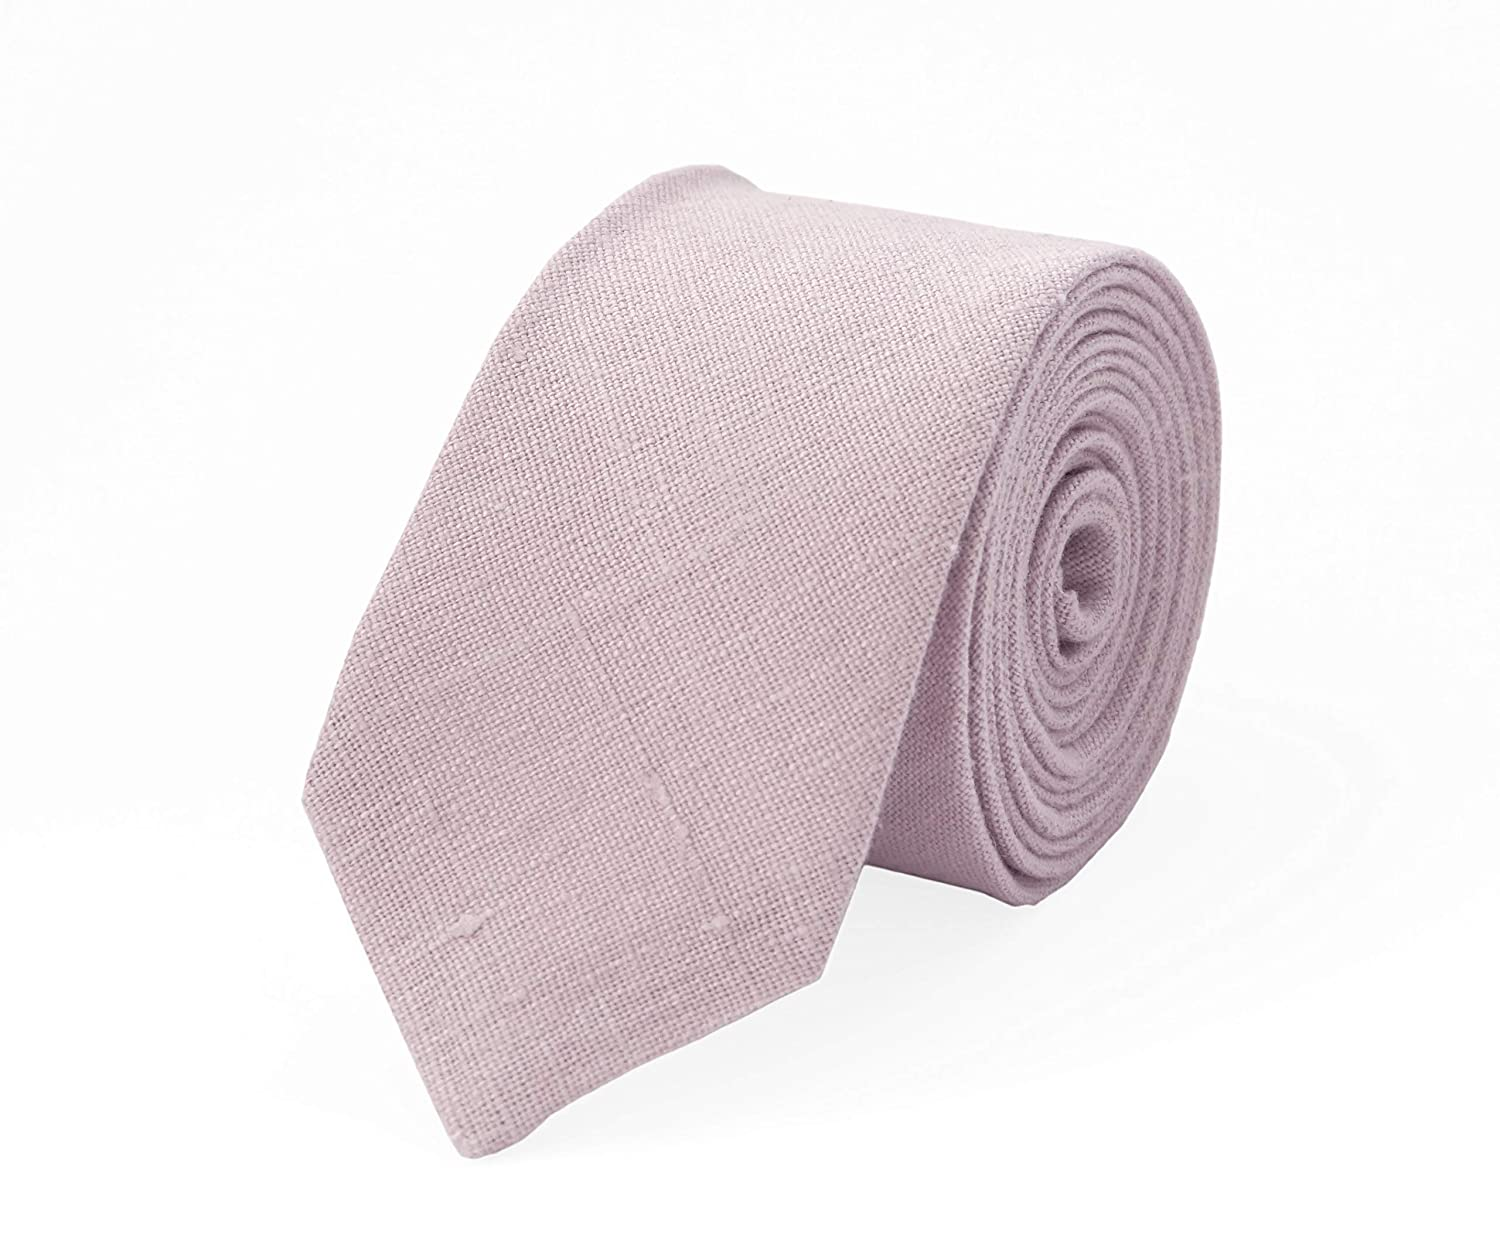 ed7bb036934f Dusty rose linen necktie for wedding and bow ties for men available with  matching pocket square